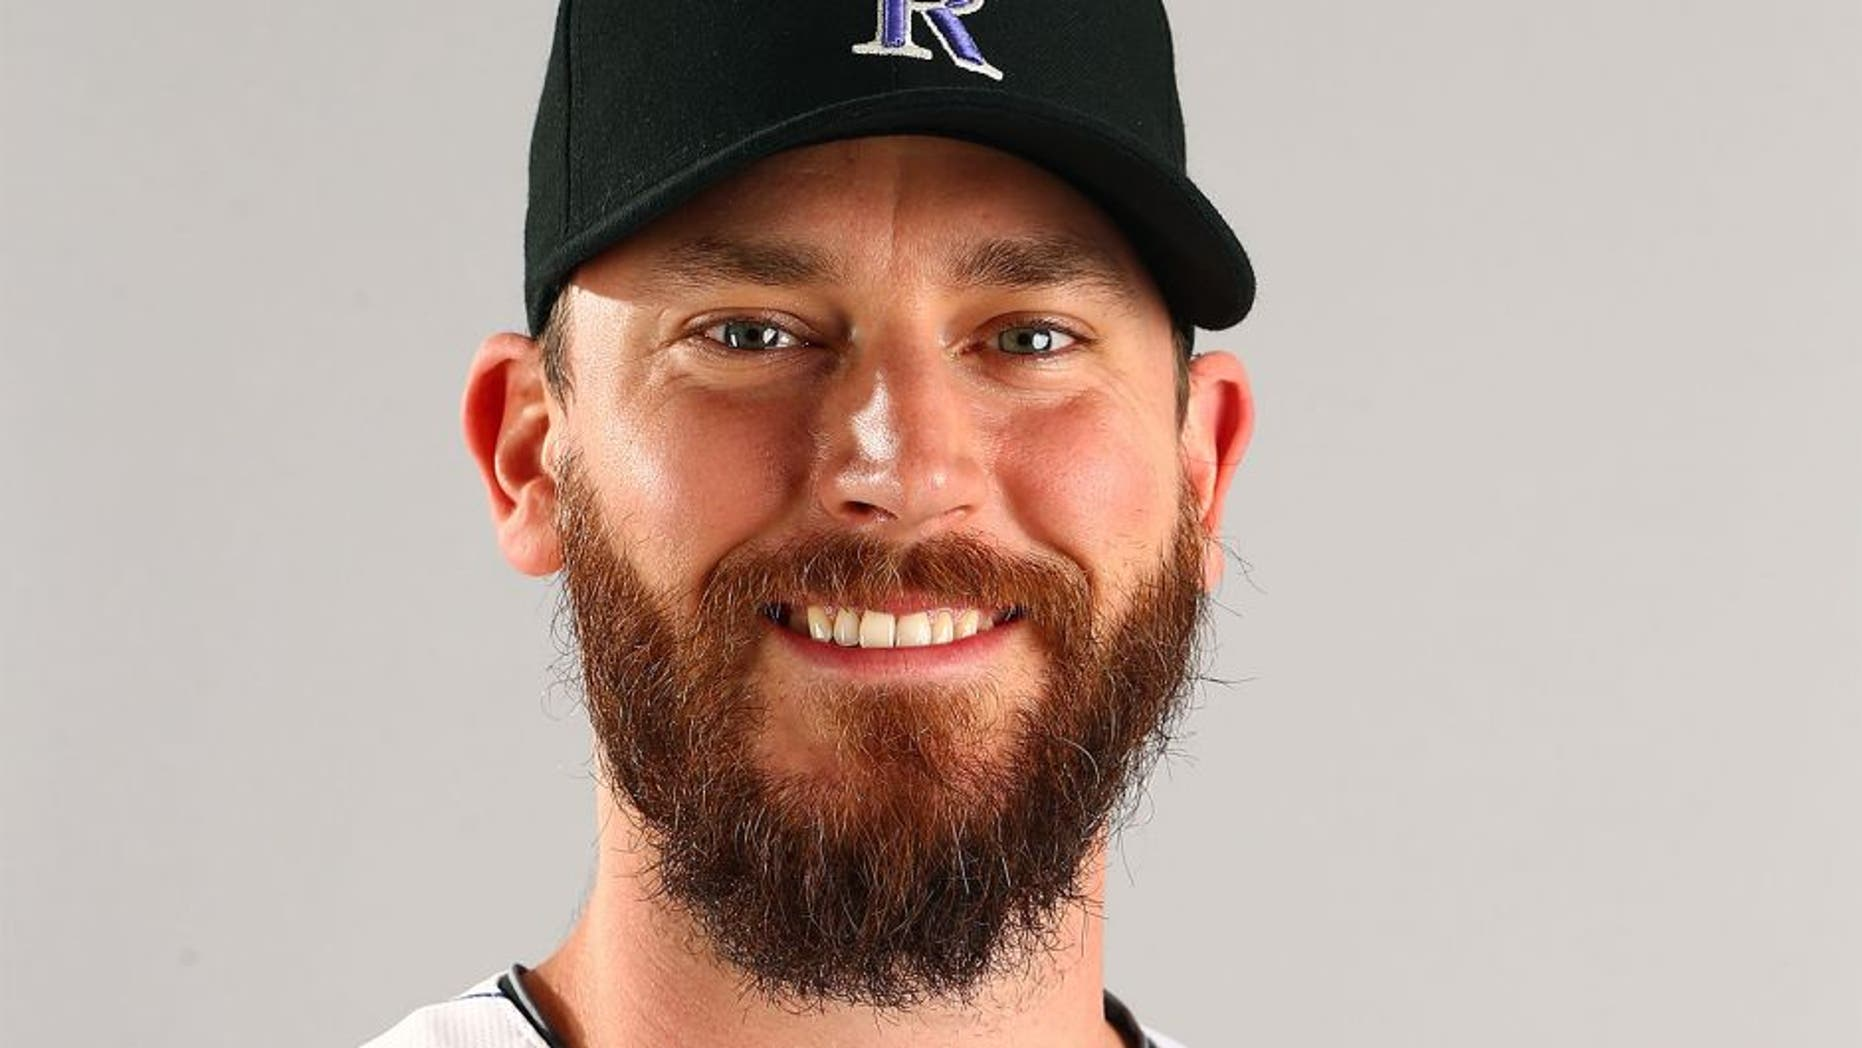 Mar 1, 2015; Scottsdale, AZ, USA; Colorado Rockies pitcher John Axford poses for a portrait during photo day at Salt River Fields. Mandatory Credit: Mark J. Rebilas-USA TODAY Sports